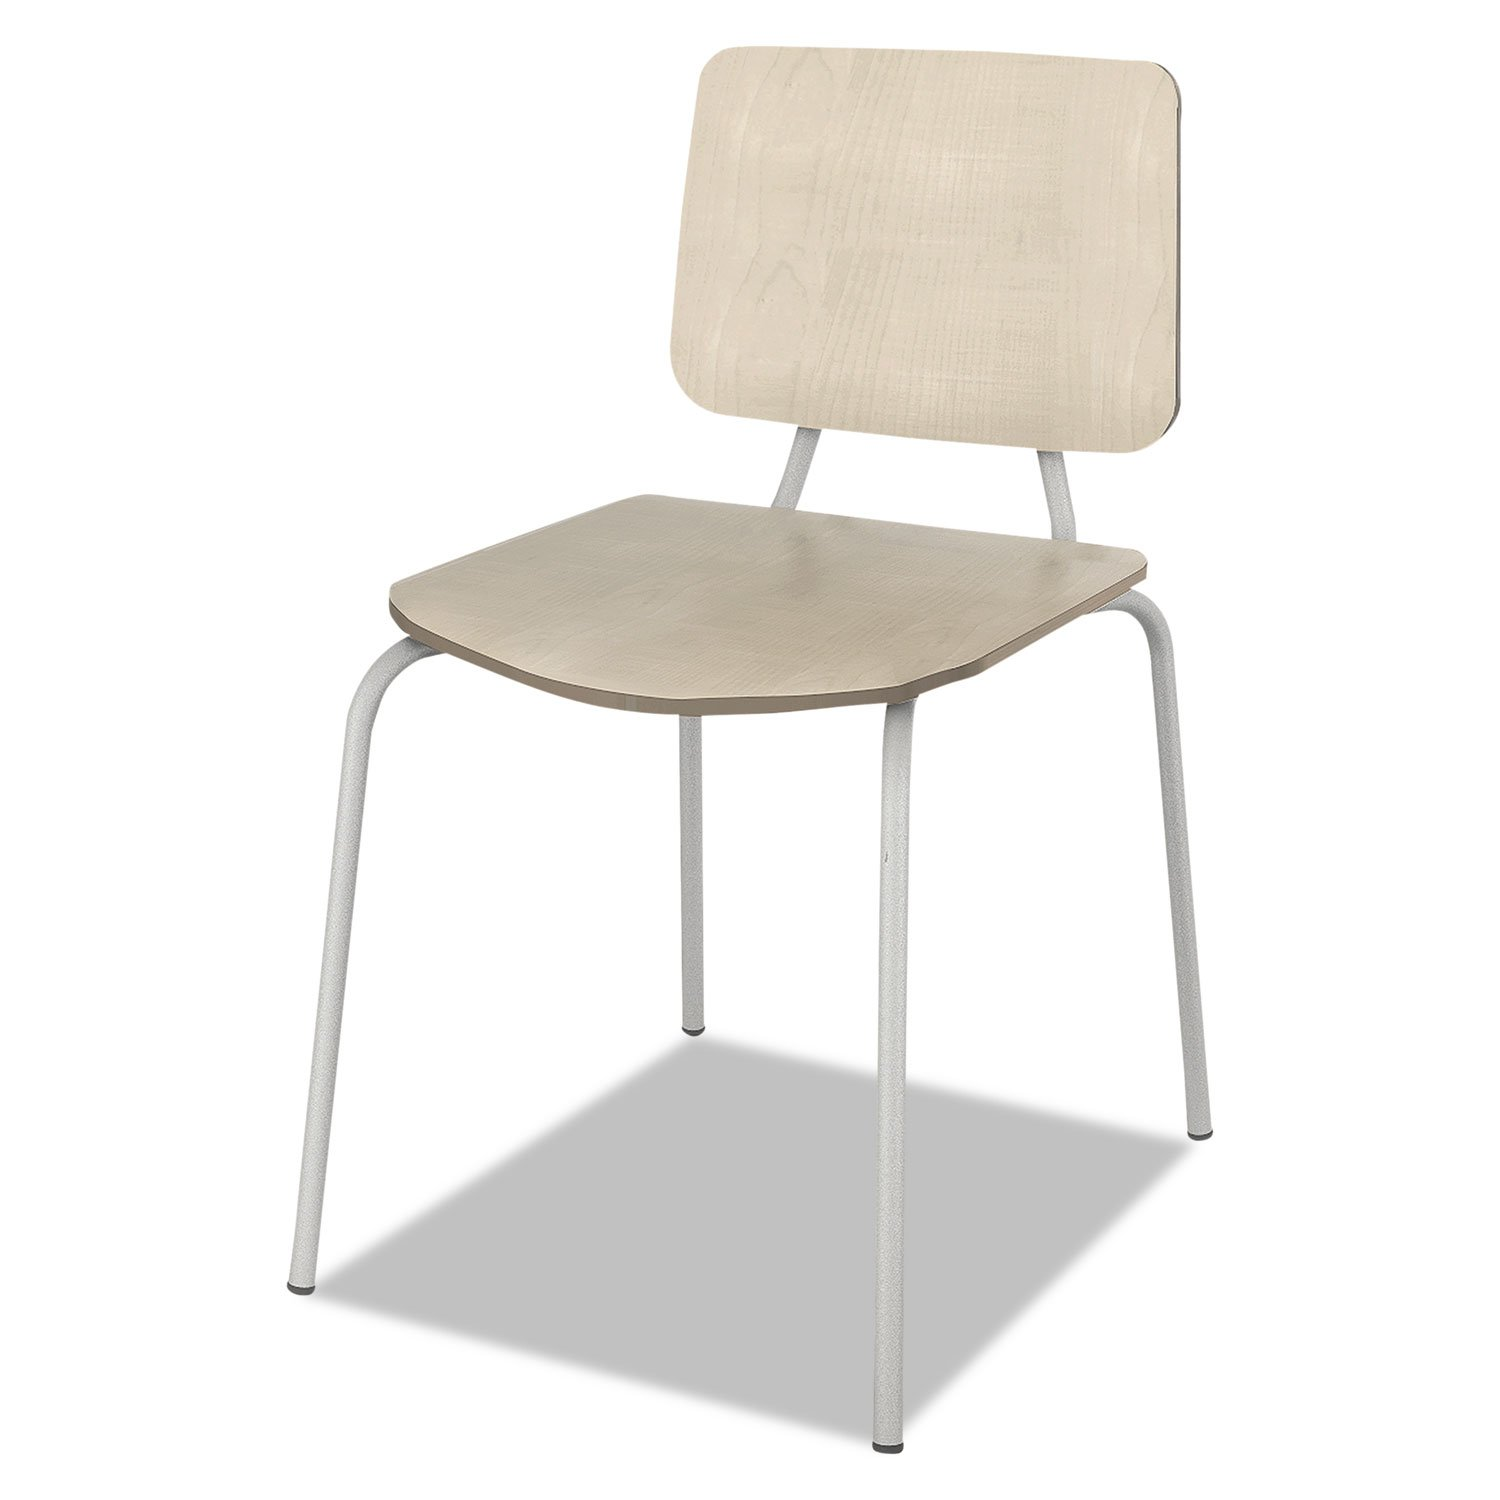 Linea Italia TR508OAT Trento Line Sienna Stacking Wood Chair, Oatmeal, Stacks 6 High (Case of 2)